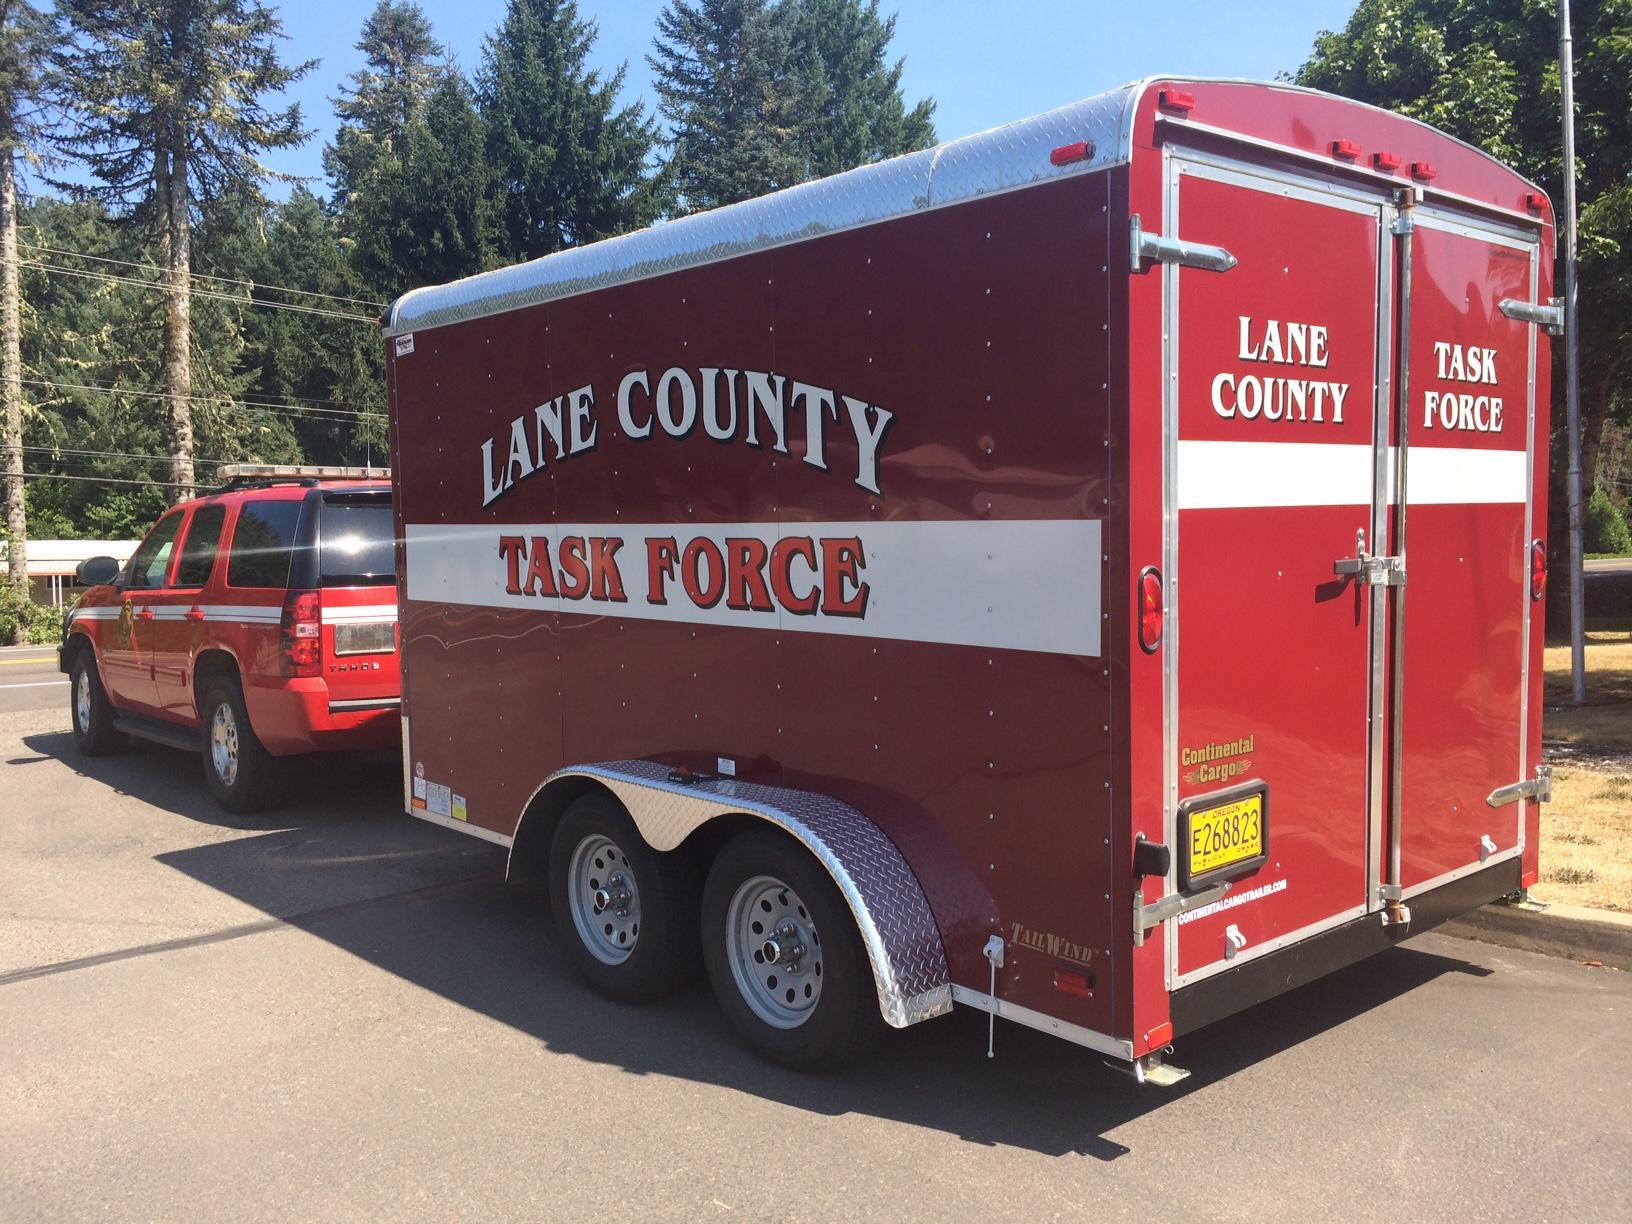 The Lane County Task Force mobilized to the Milli Fire today . Photo by Ellen Meny.